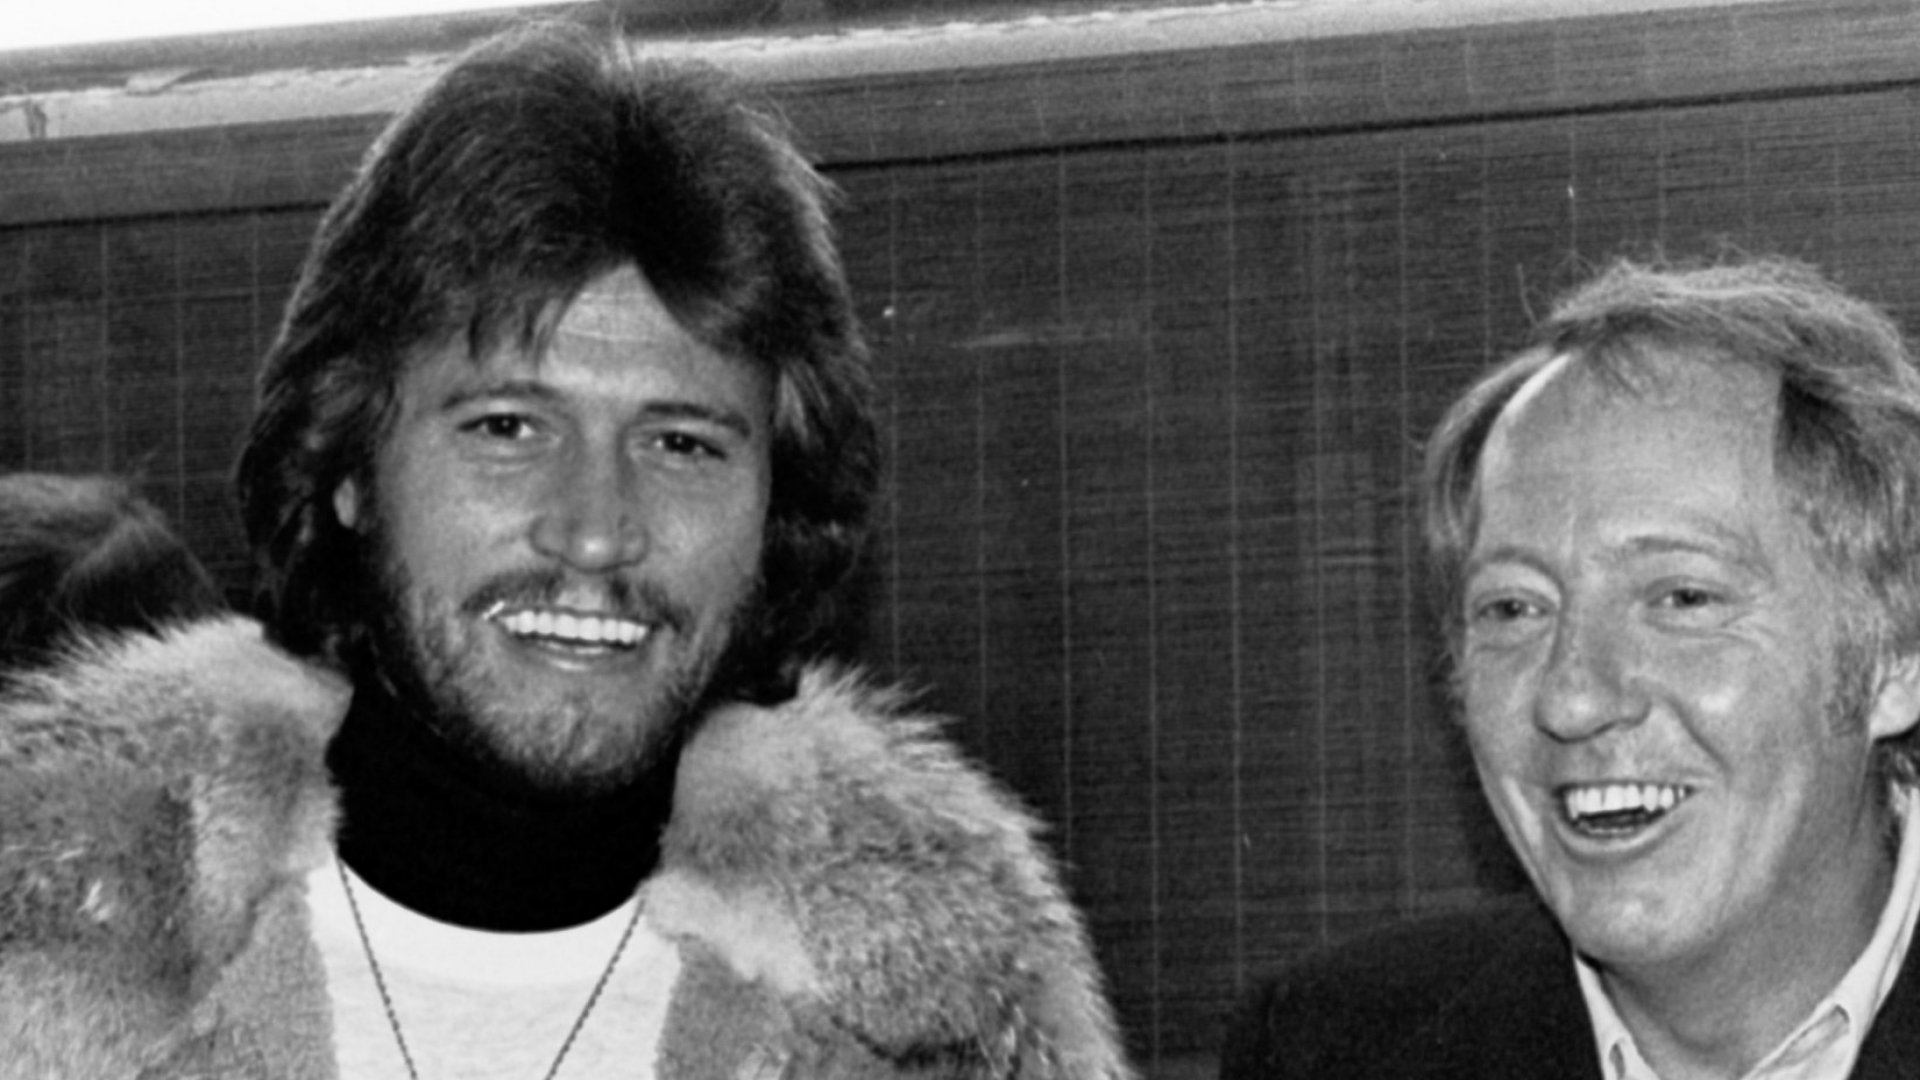 From left: Barry Gibb of the Bee Gees and Robert Stigwood.